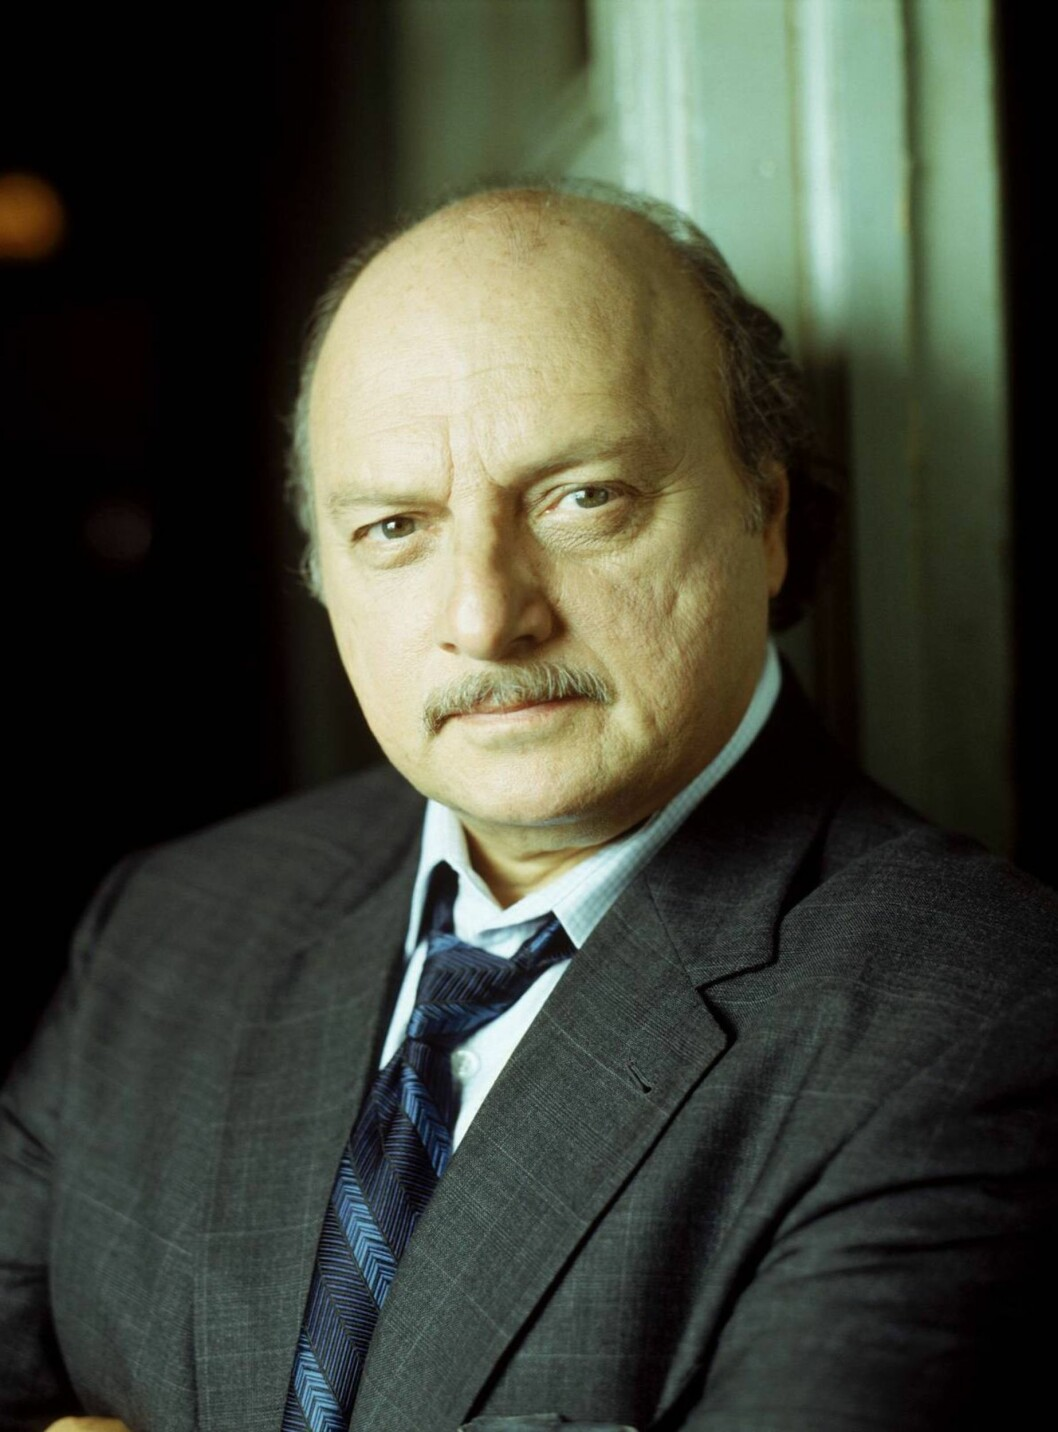 <strong>Beskrivelse:</strong> NYPD Blue - sesong 11 Sipowicz Sipowich_81892.jpg NYPD Blue - sesong 11 Sipowicz   Foto: TV2